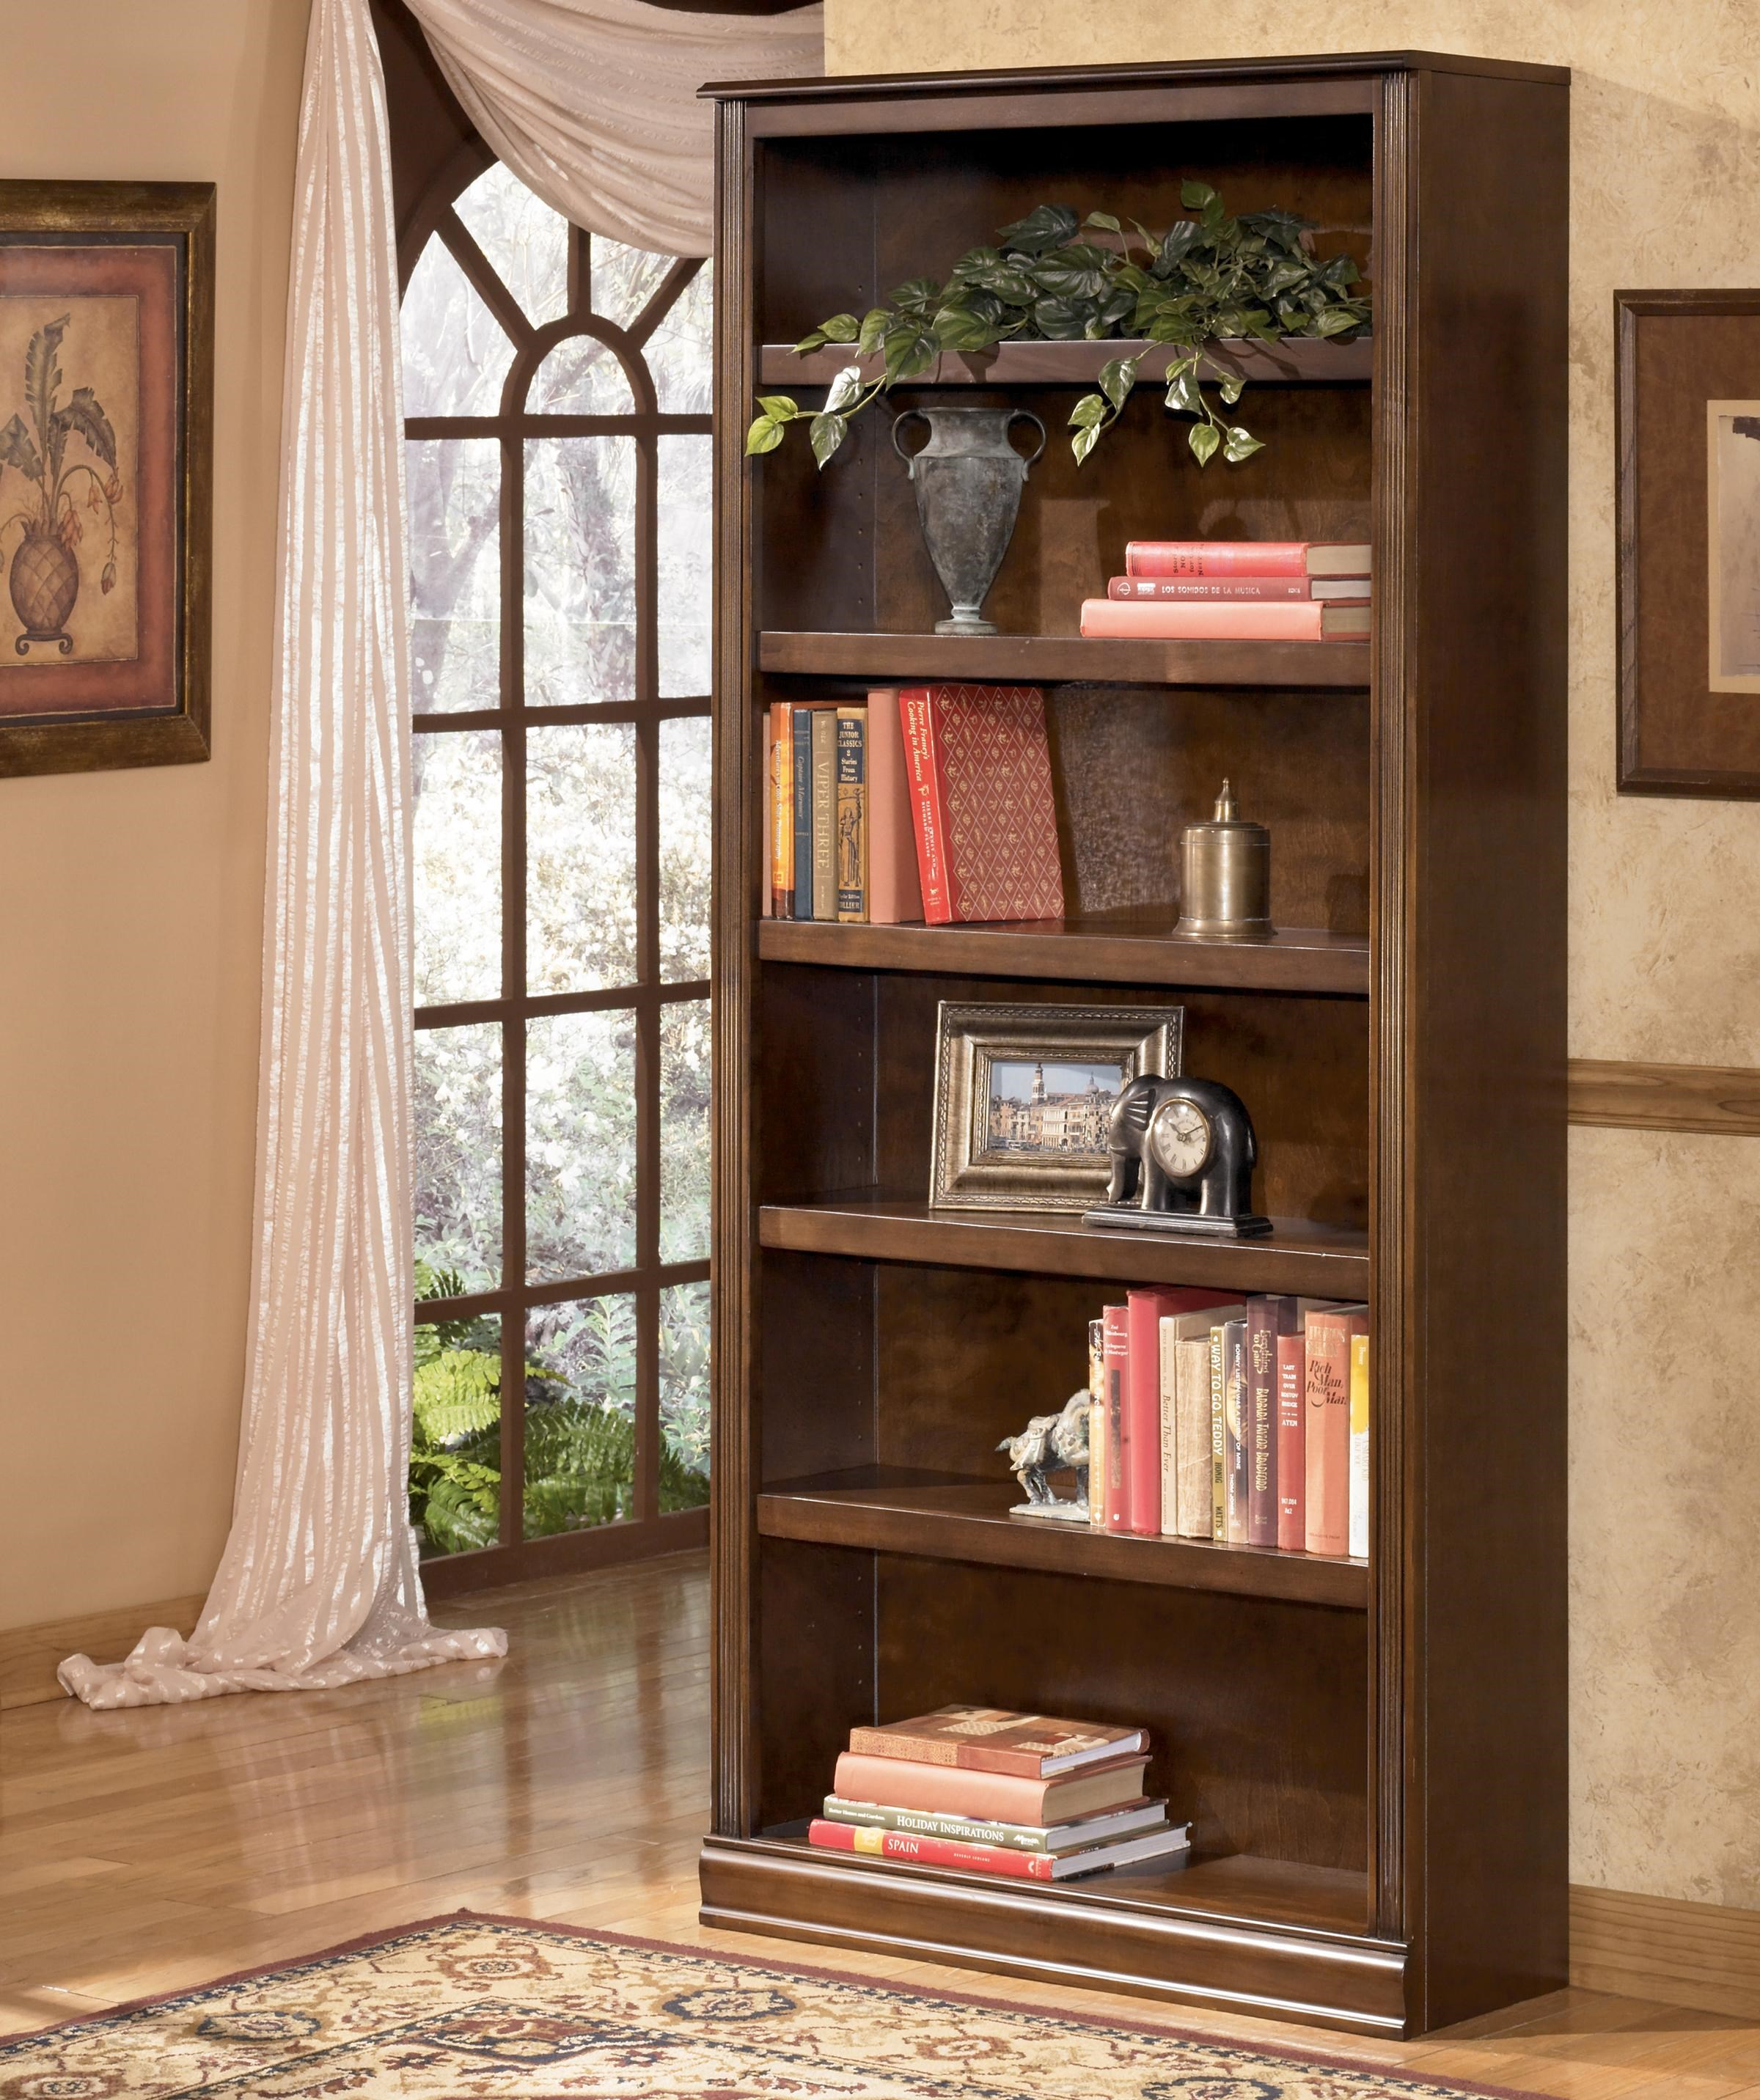 Perfect Popular Furniture In Jackson Ms Big Lots Bedroom Furniture Office Furniture.